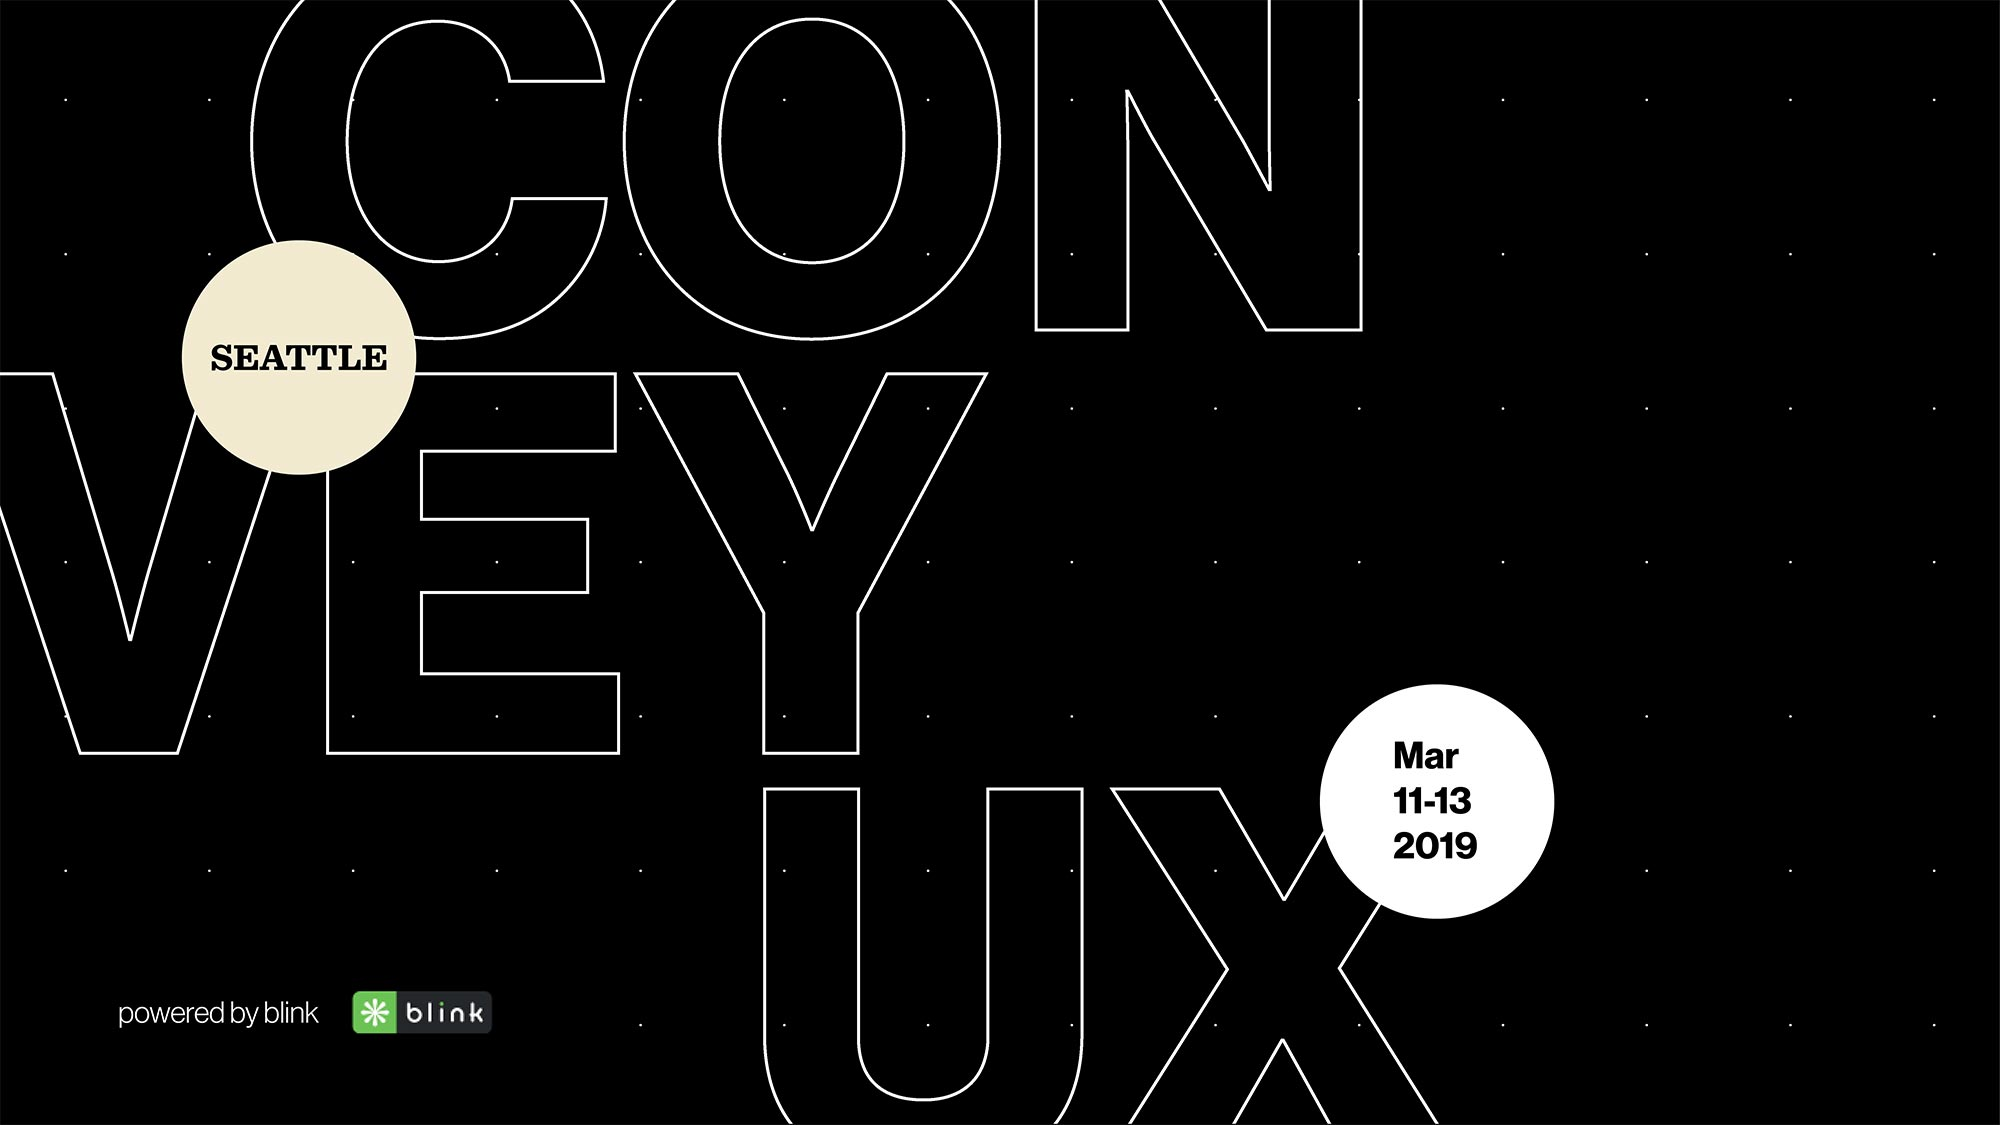 Convey UX, Seattle, March 11-13 2019